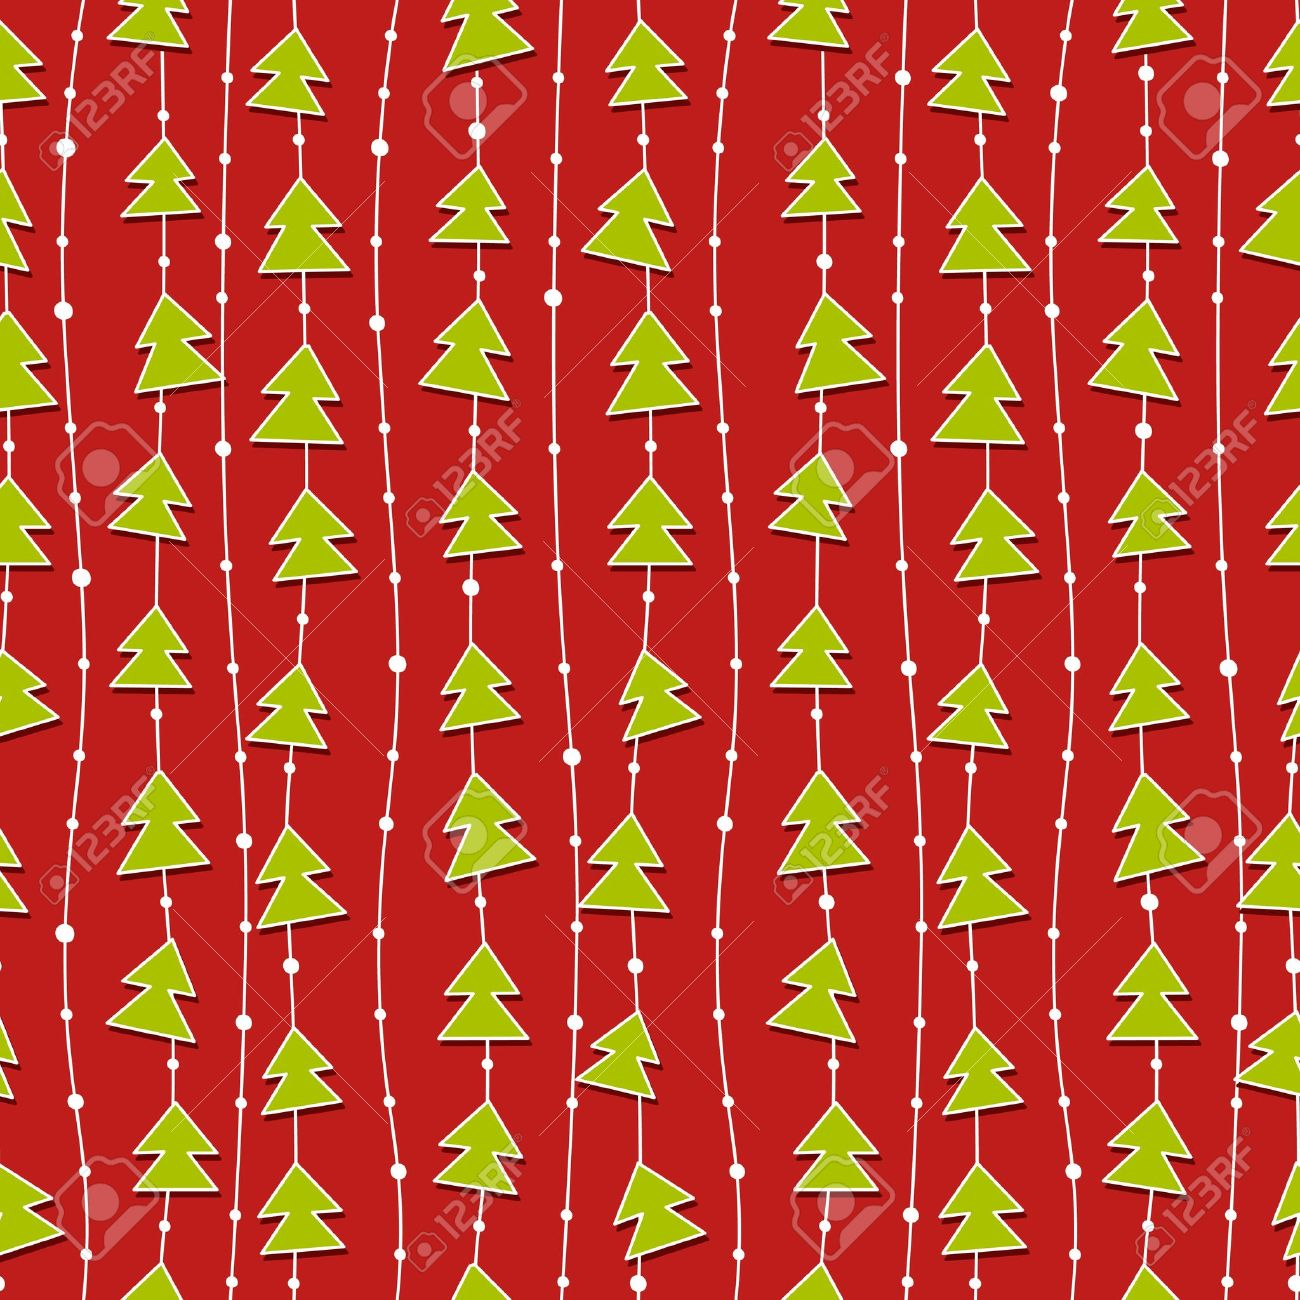 Red Christmas Pattern With Green Christmas Trees. Royalty Free ...